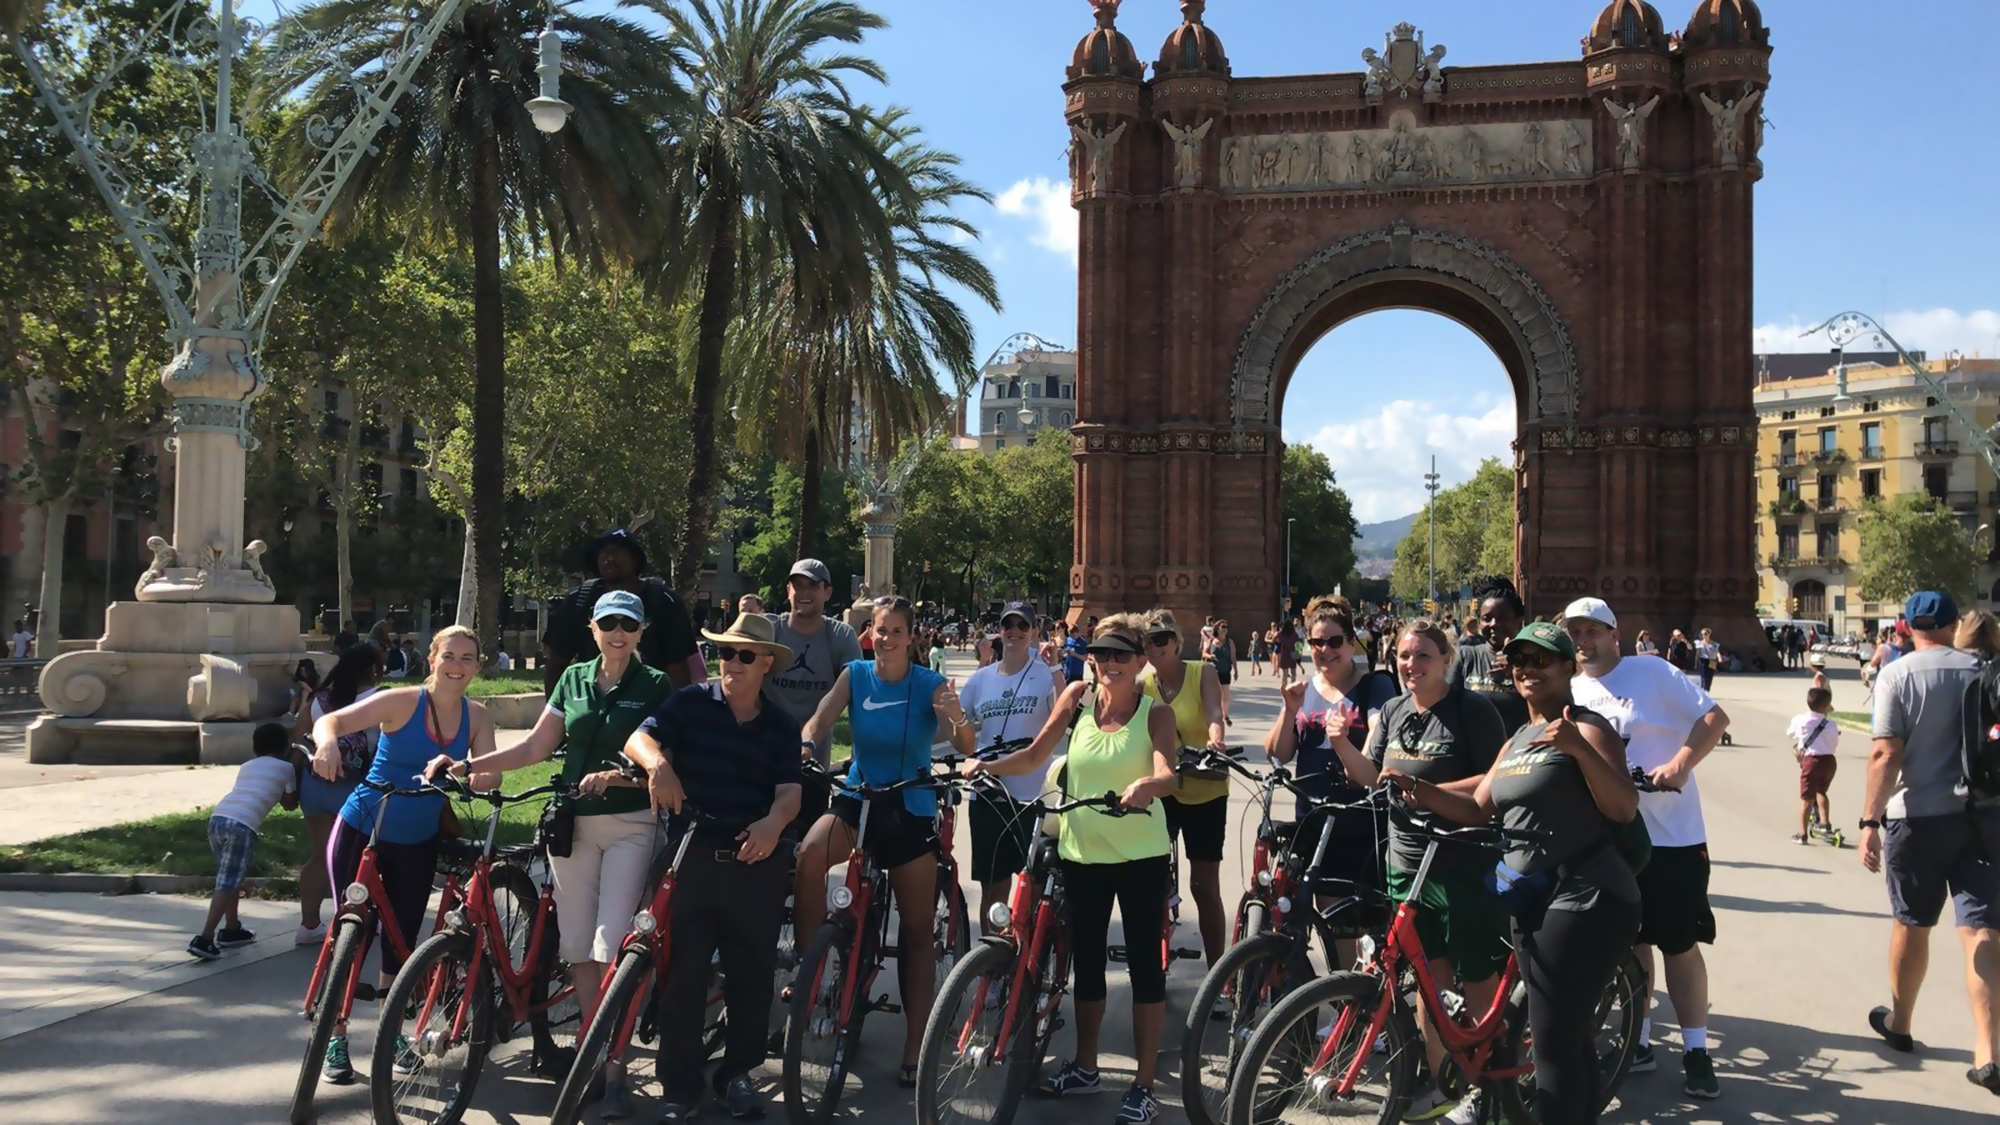 Sports Tour & Bike Tour in Spain Barcelona